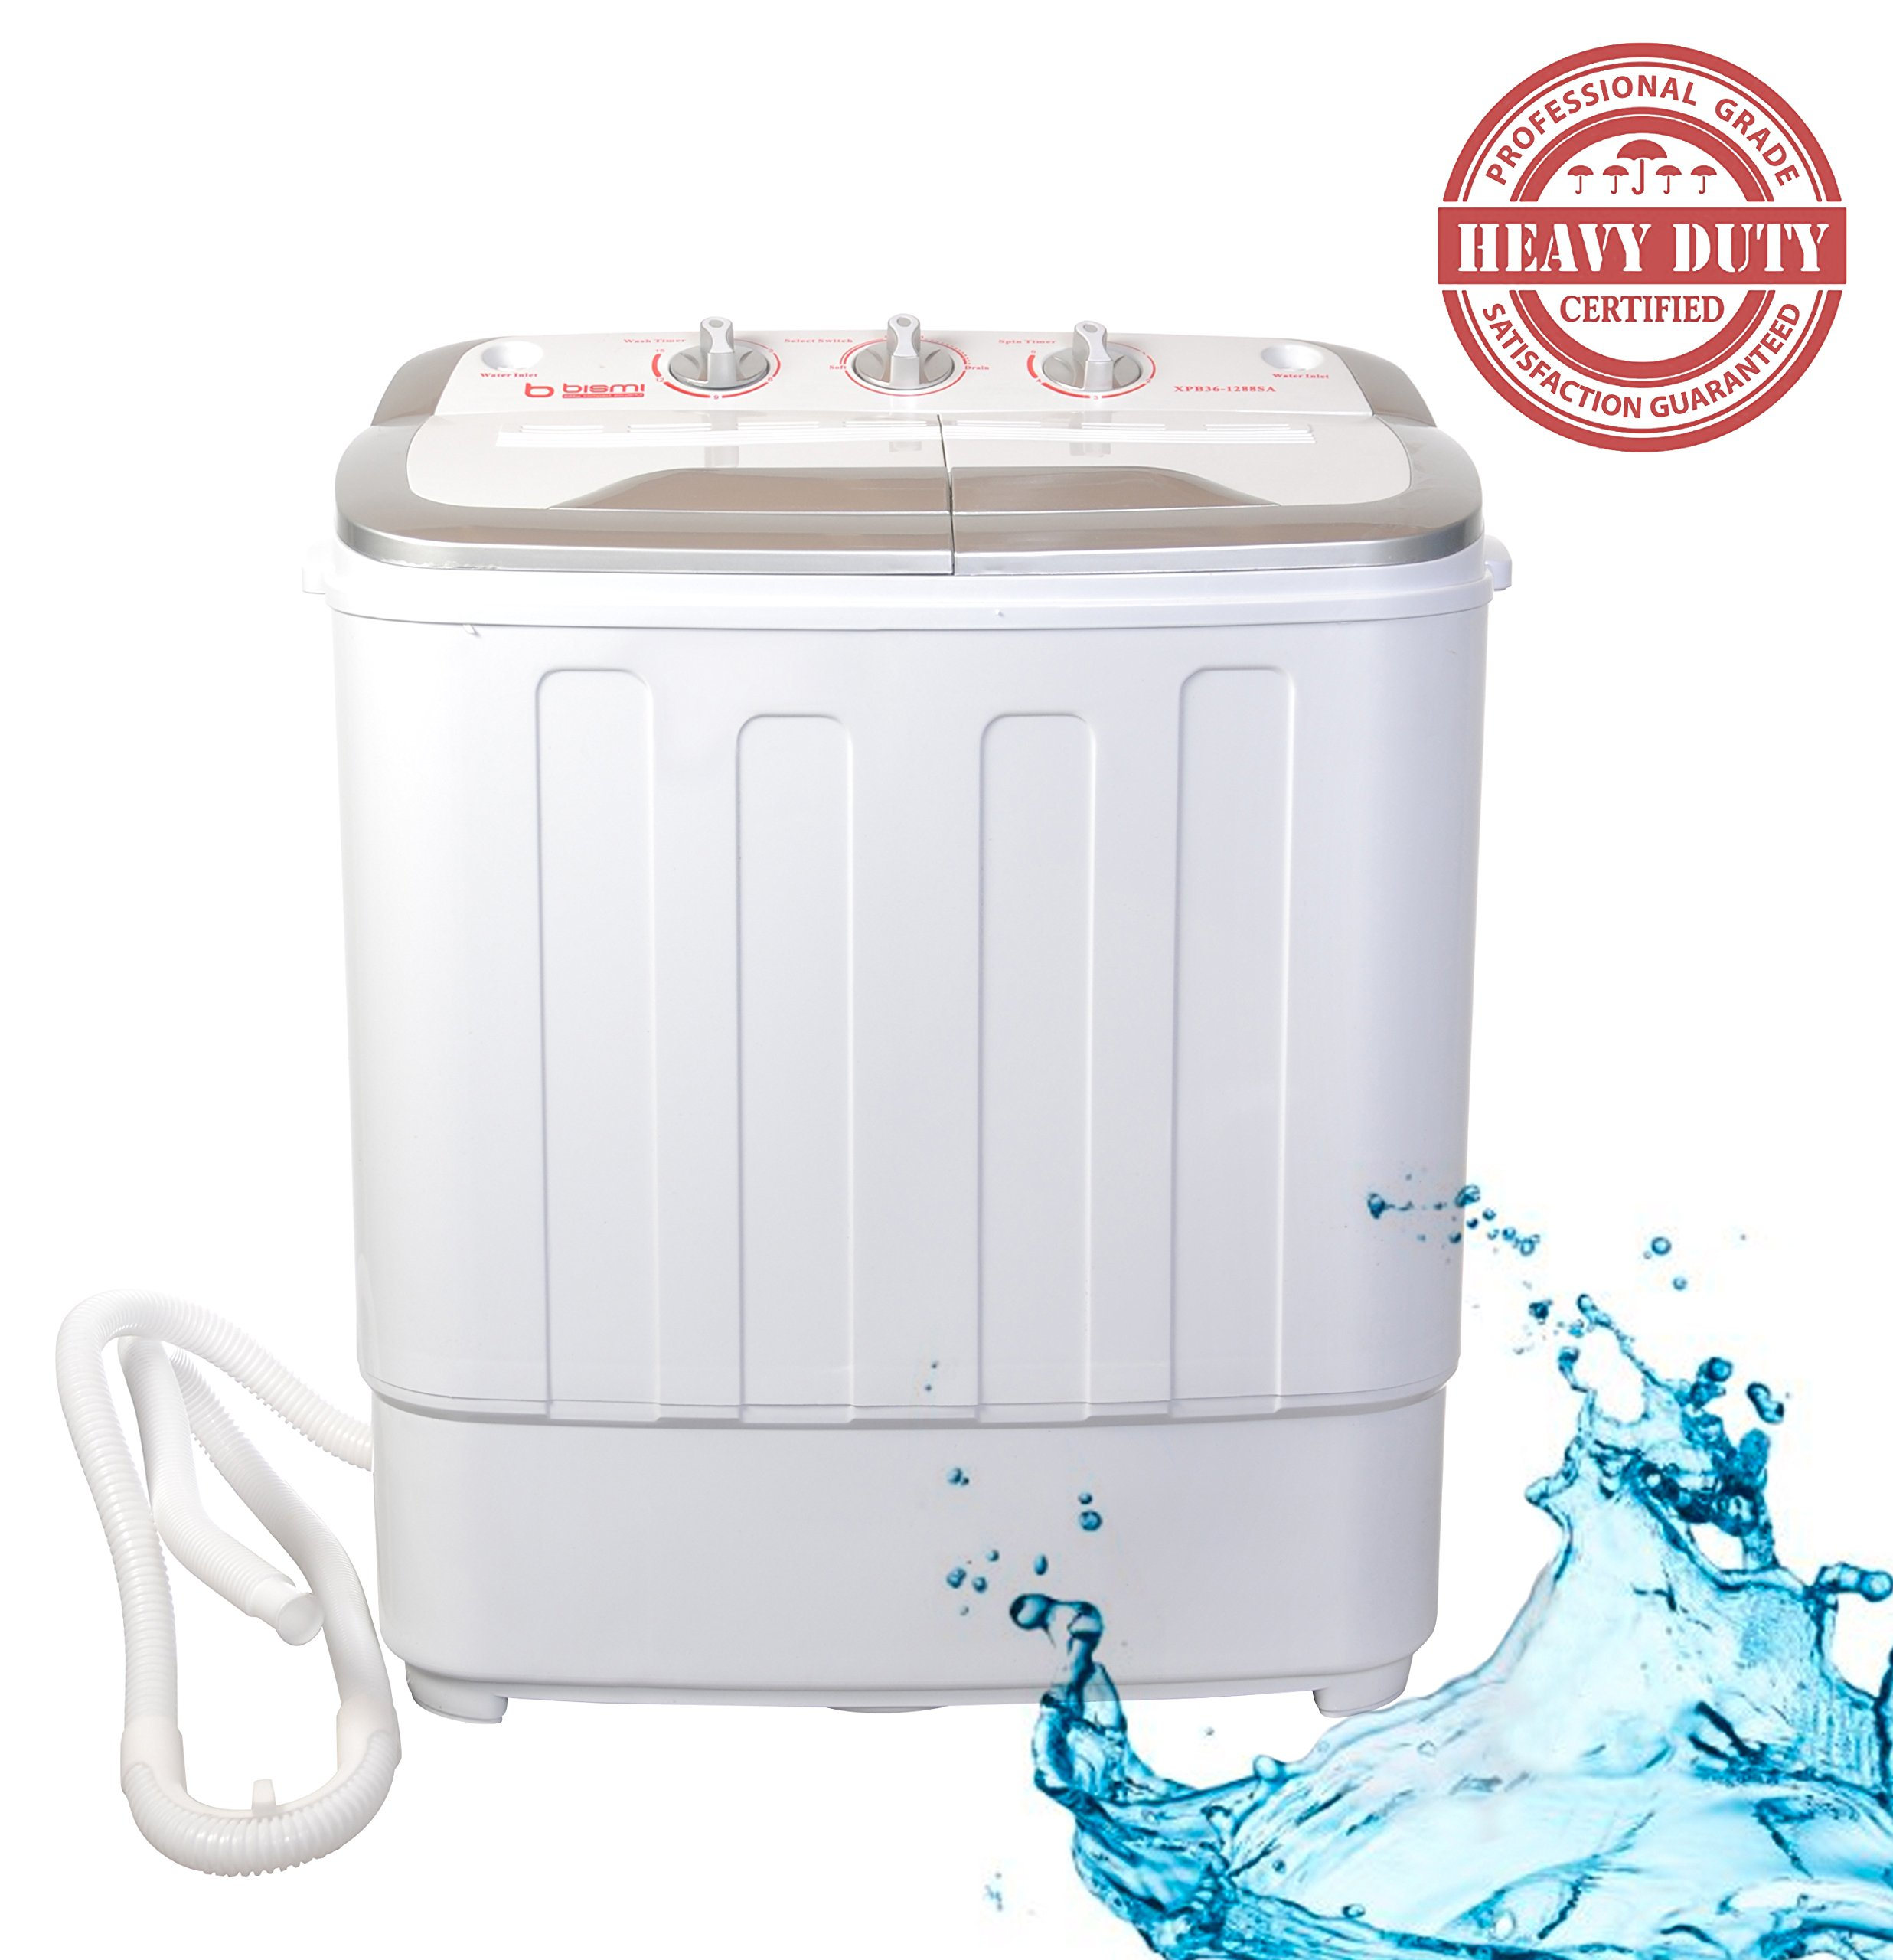 Miniature Clothes Dryer ~ Bismi professional grade compact portable washing machine